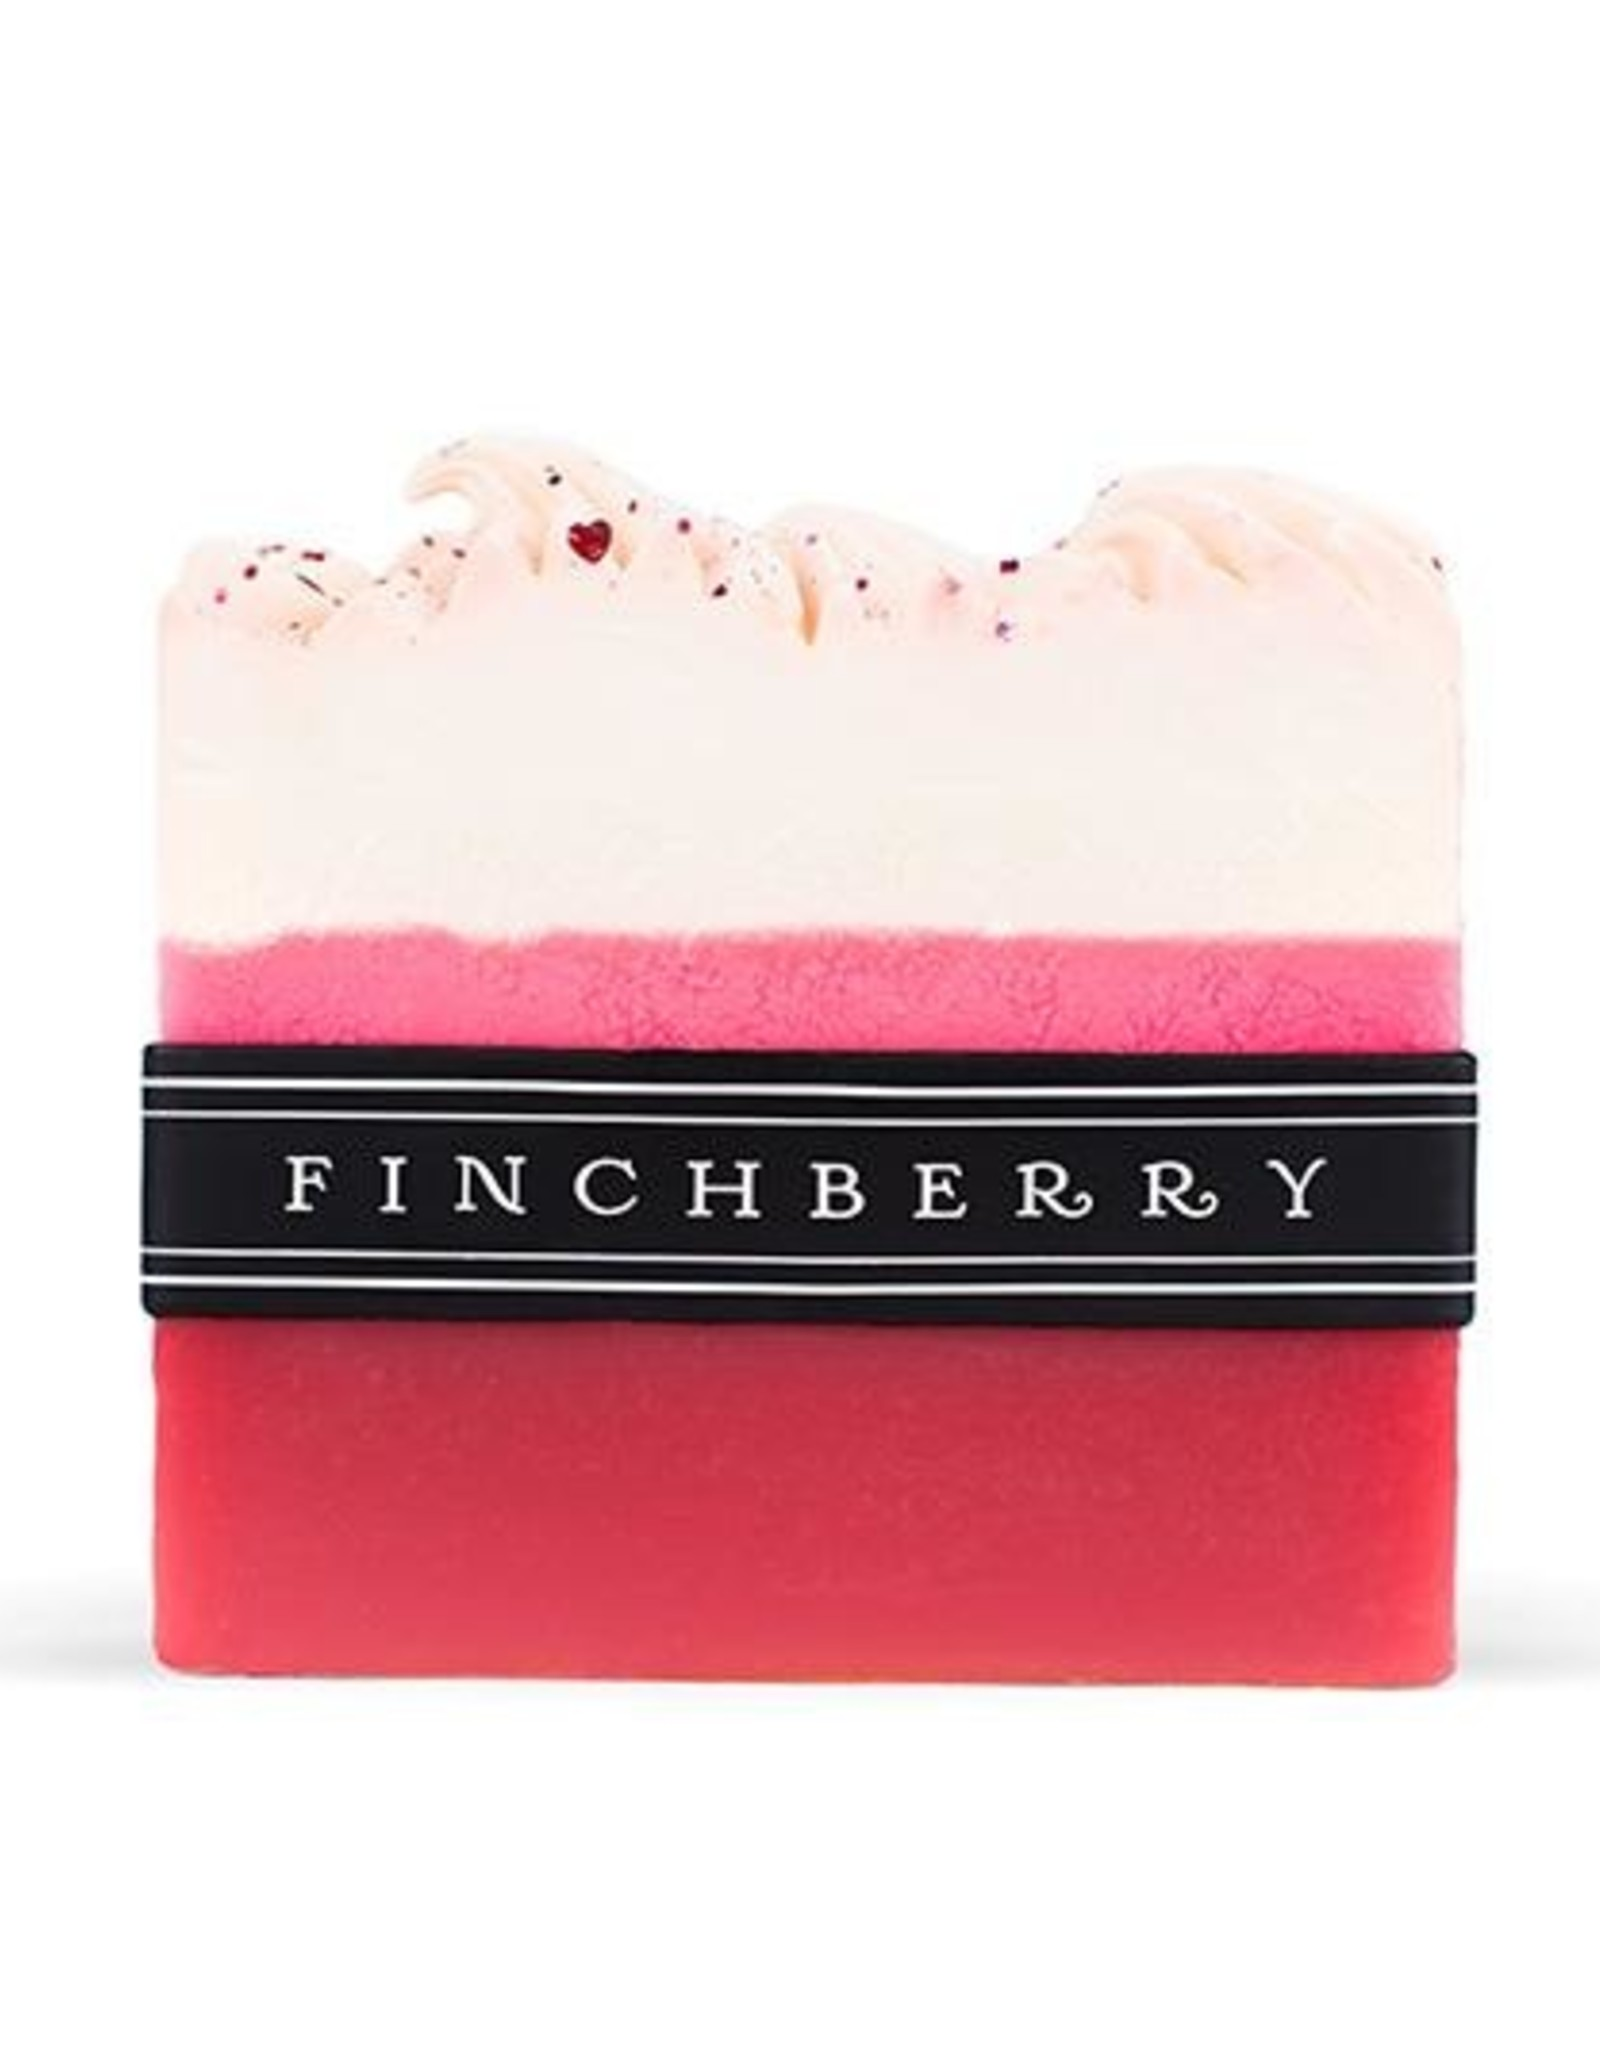 FinchBerry Soapery Cranberry Chutney - Handcrafted Vegan Soap